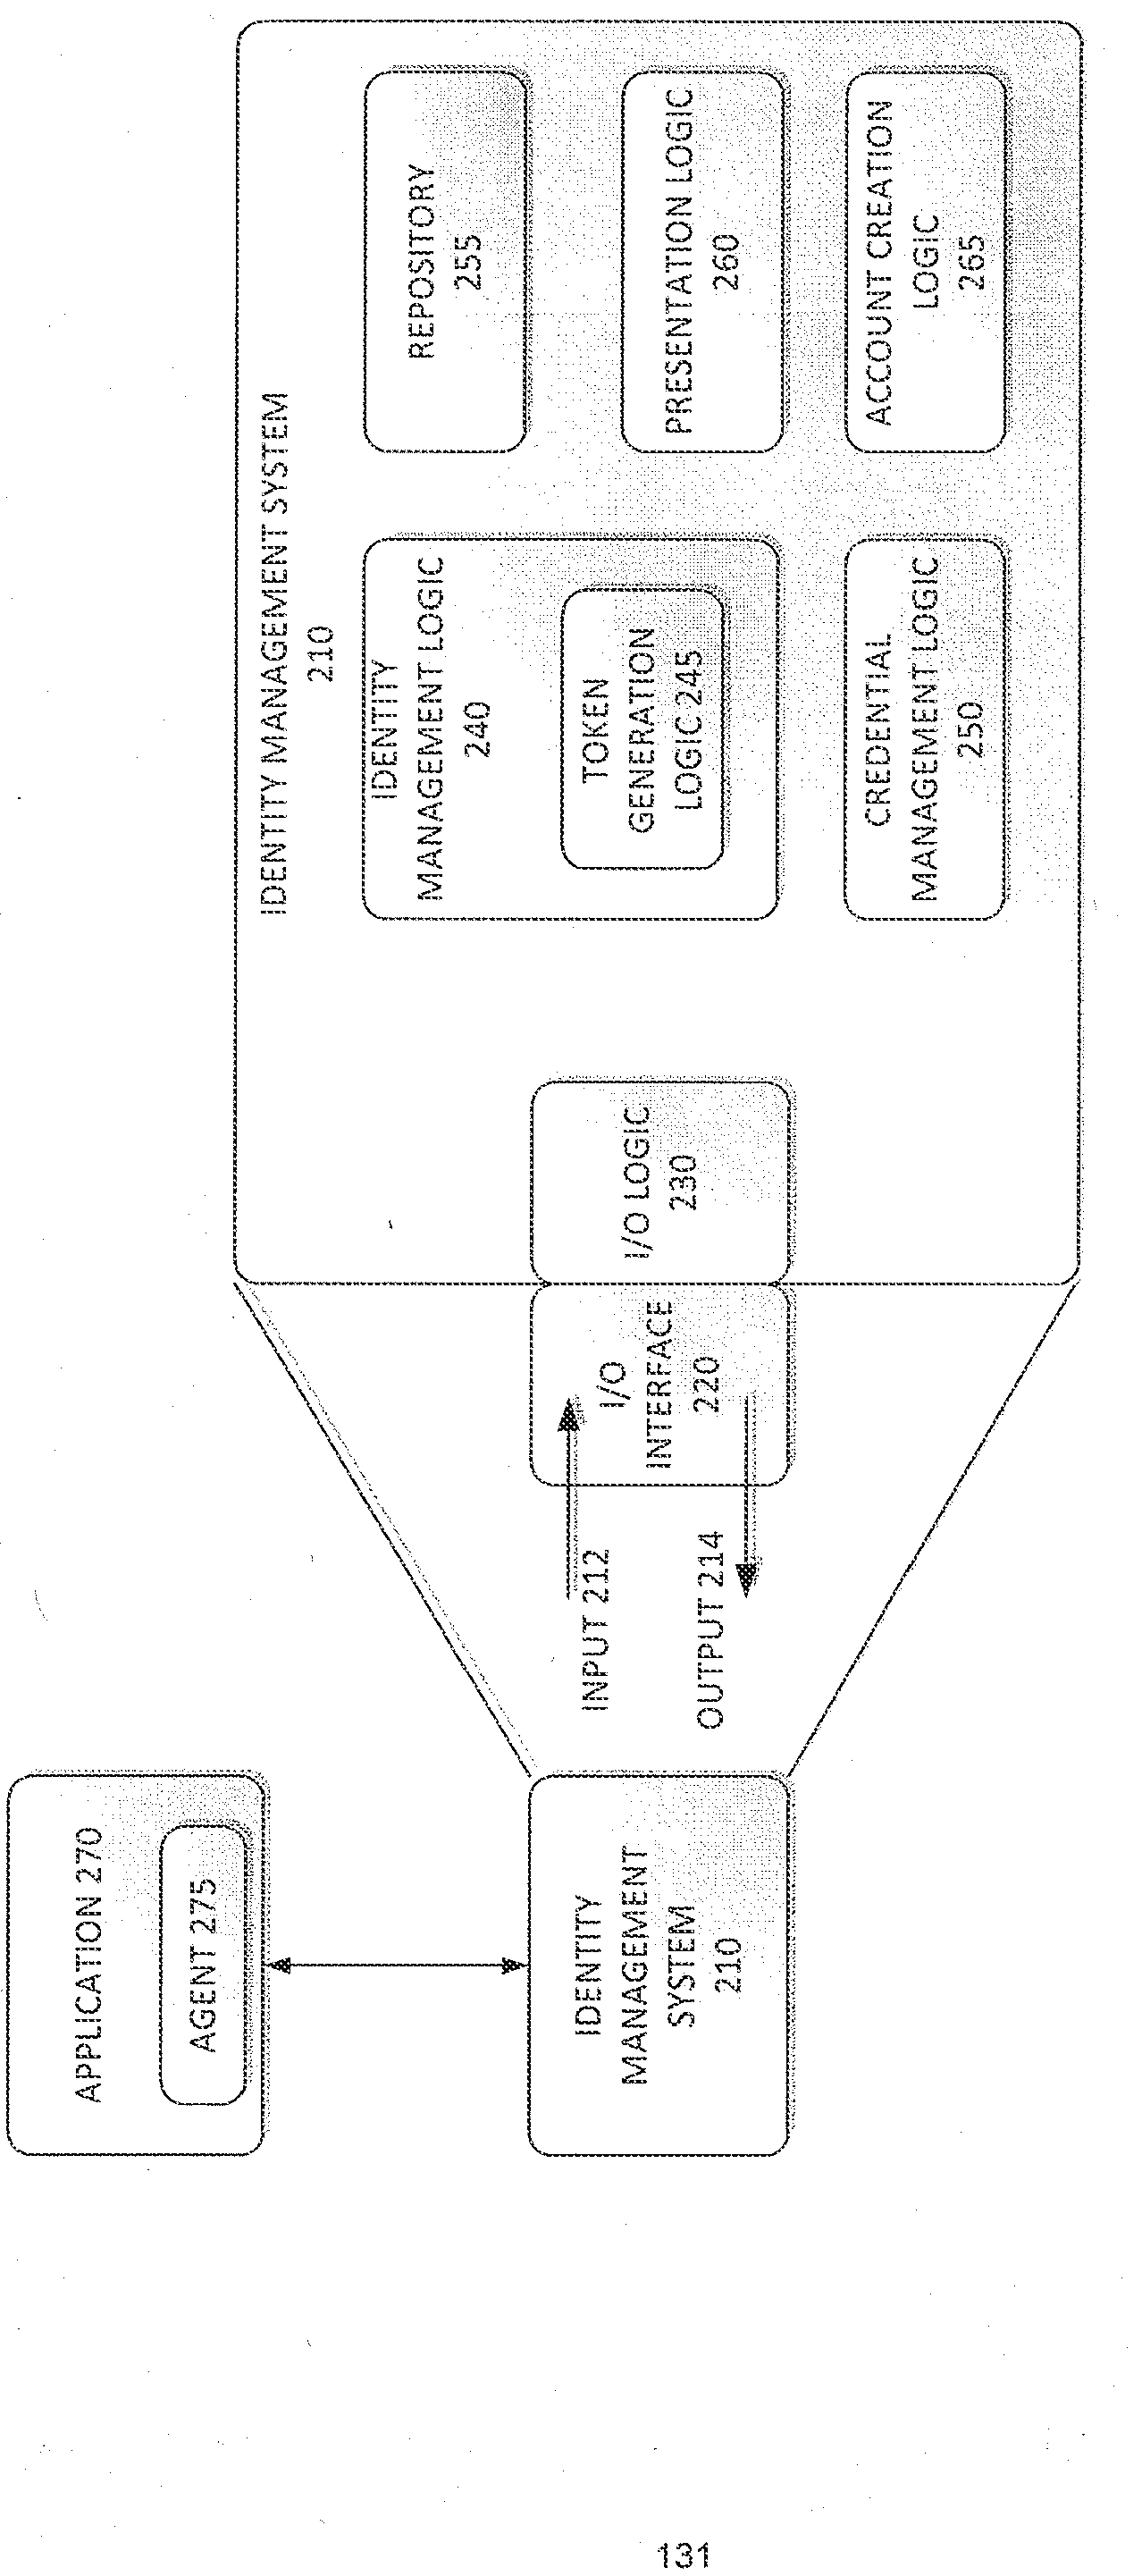 Wo2013049461a2 Oauth Framework Google Patents Ps2 Controller Diagram Flickr Photo Sharing Figure Imgf000133 0001